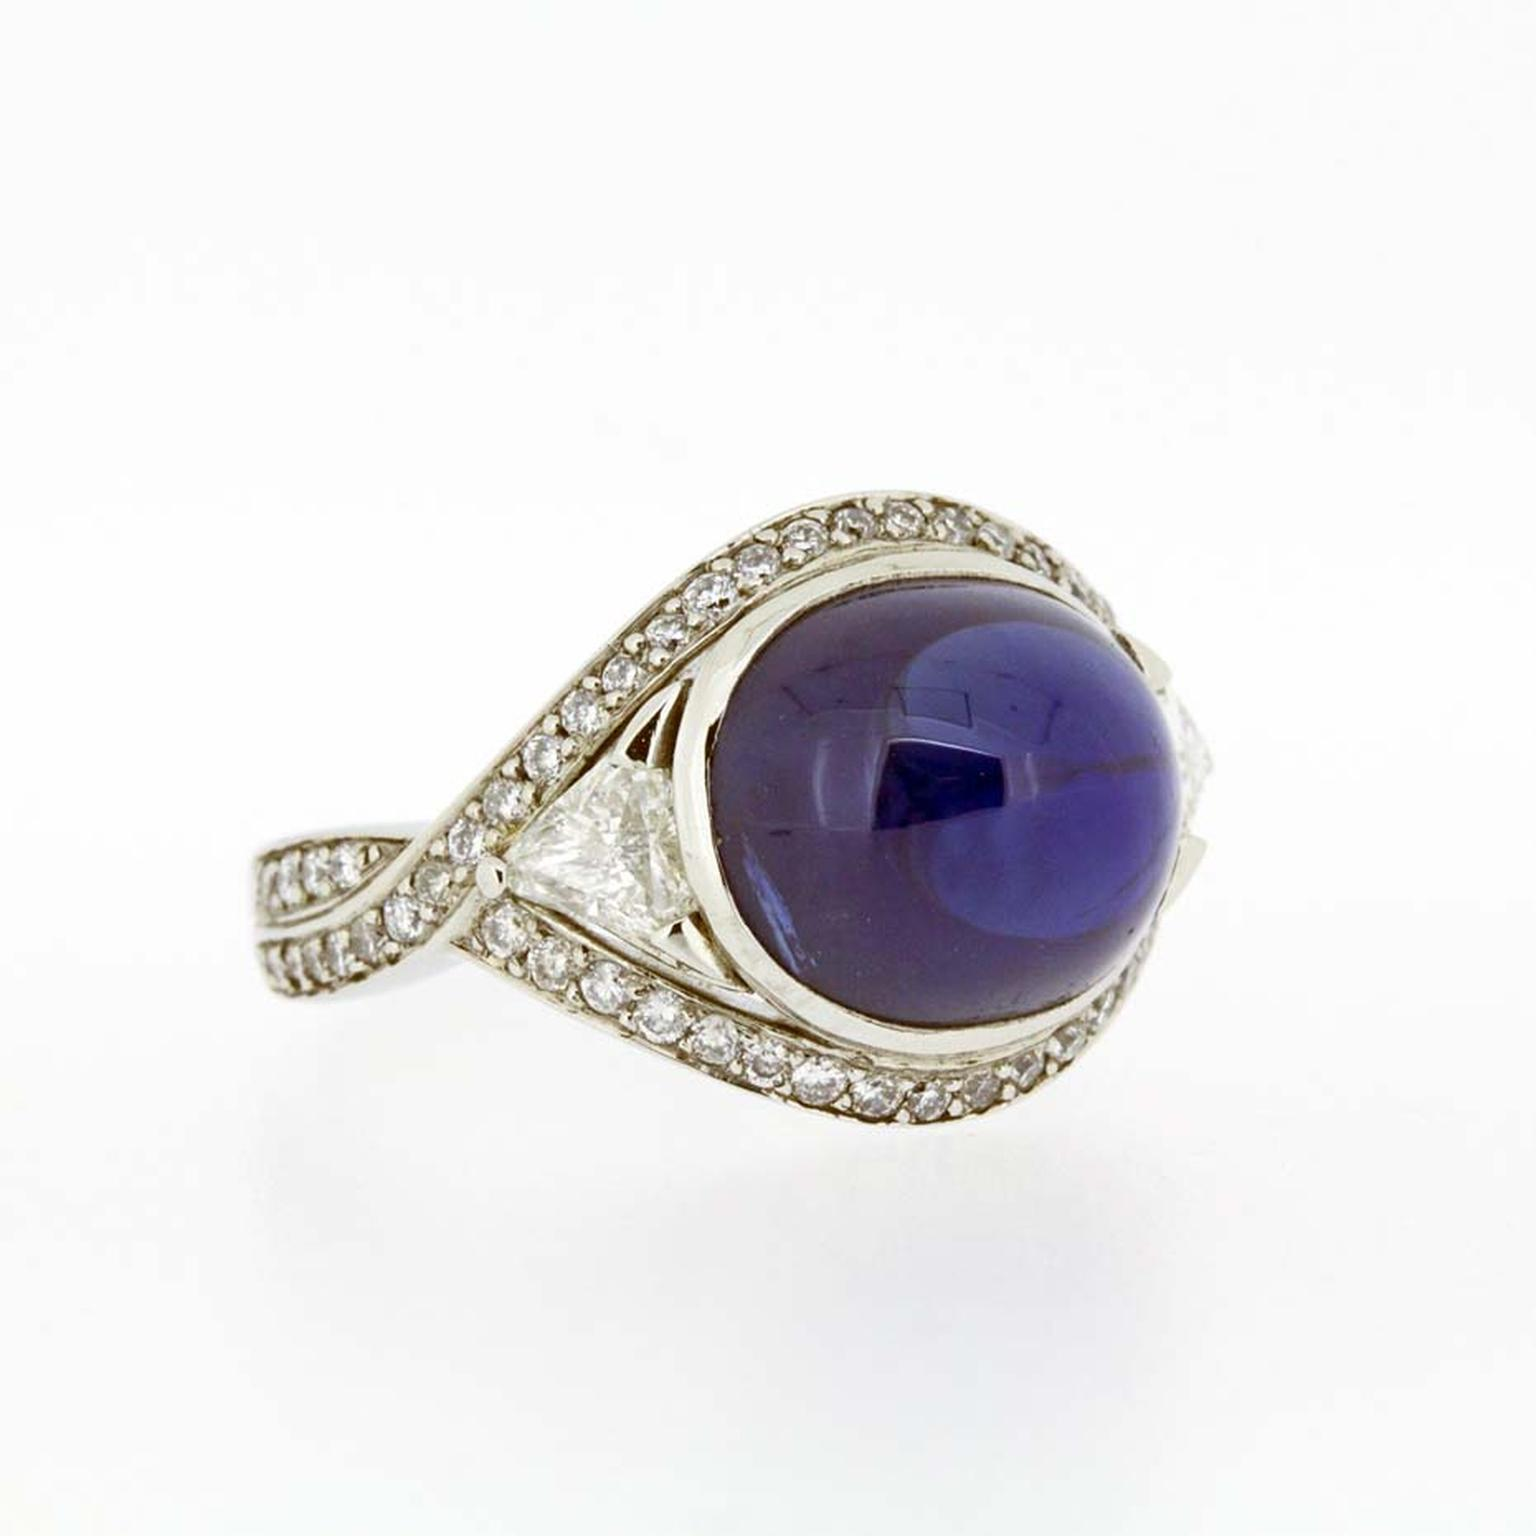 A unique sapphire engagement ring from Brighton-based Baroque Jewellery in white gold set with a large blue cabochon sapphire, flanked by trillion-cut diamonds with grain-set diamonds on the shank.